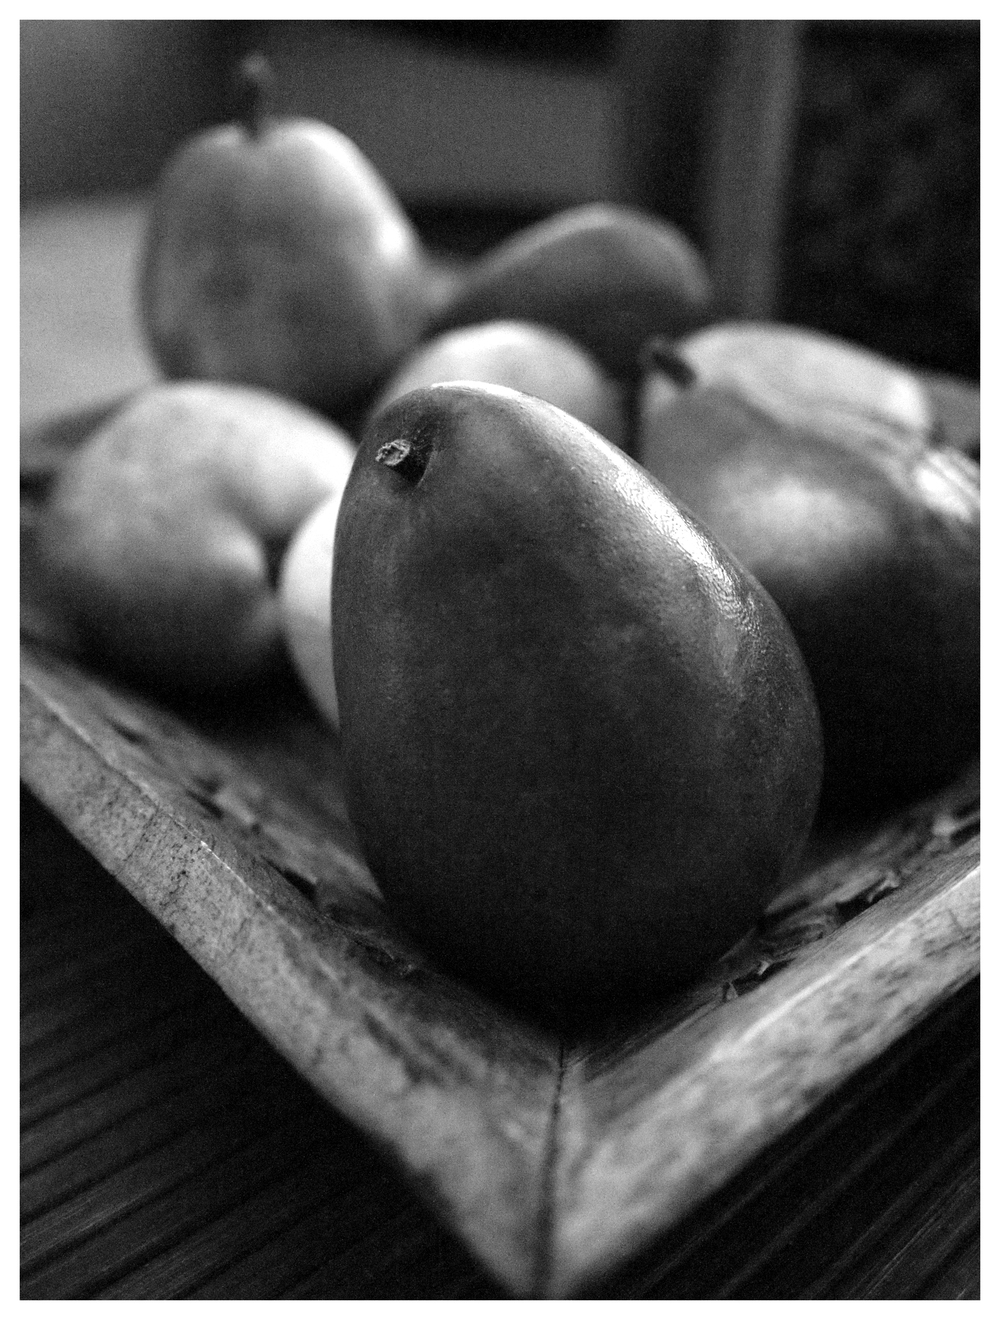 Mono and macro apples and pears (Bill Palmer, Olympus EP1)